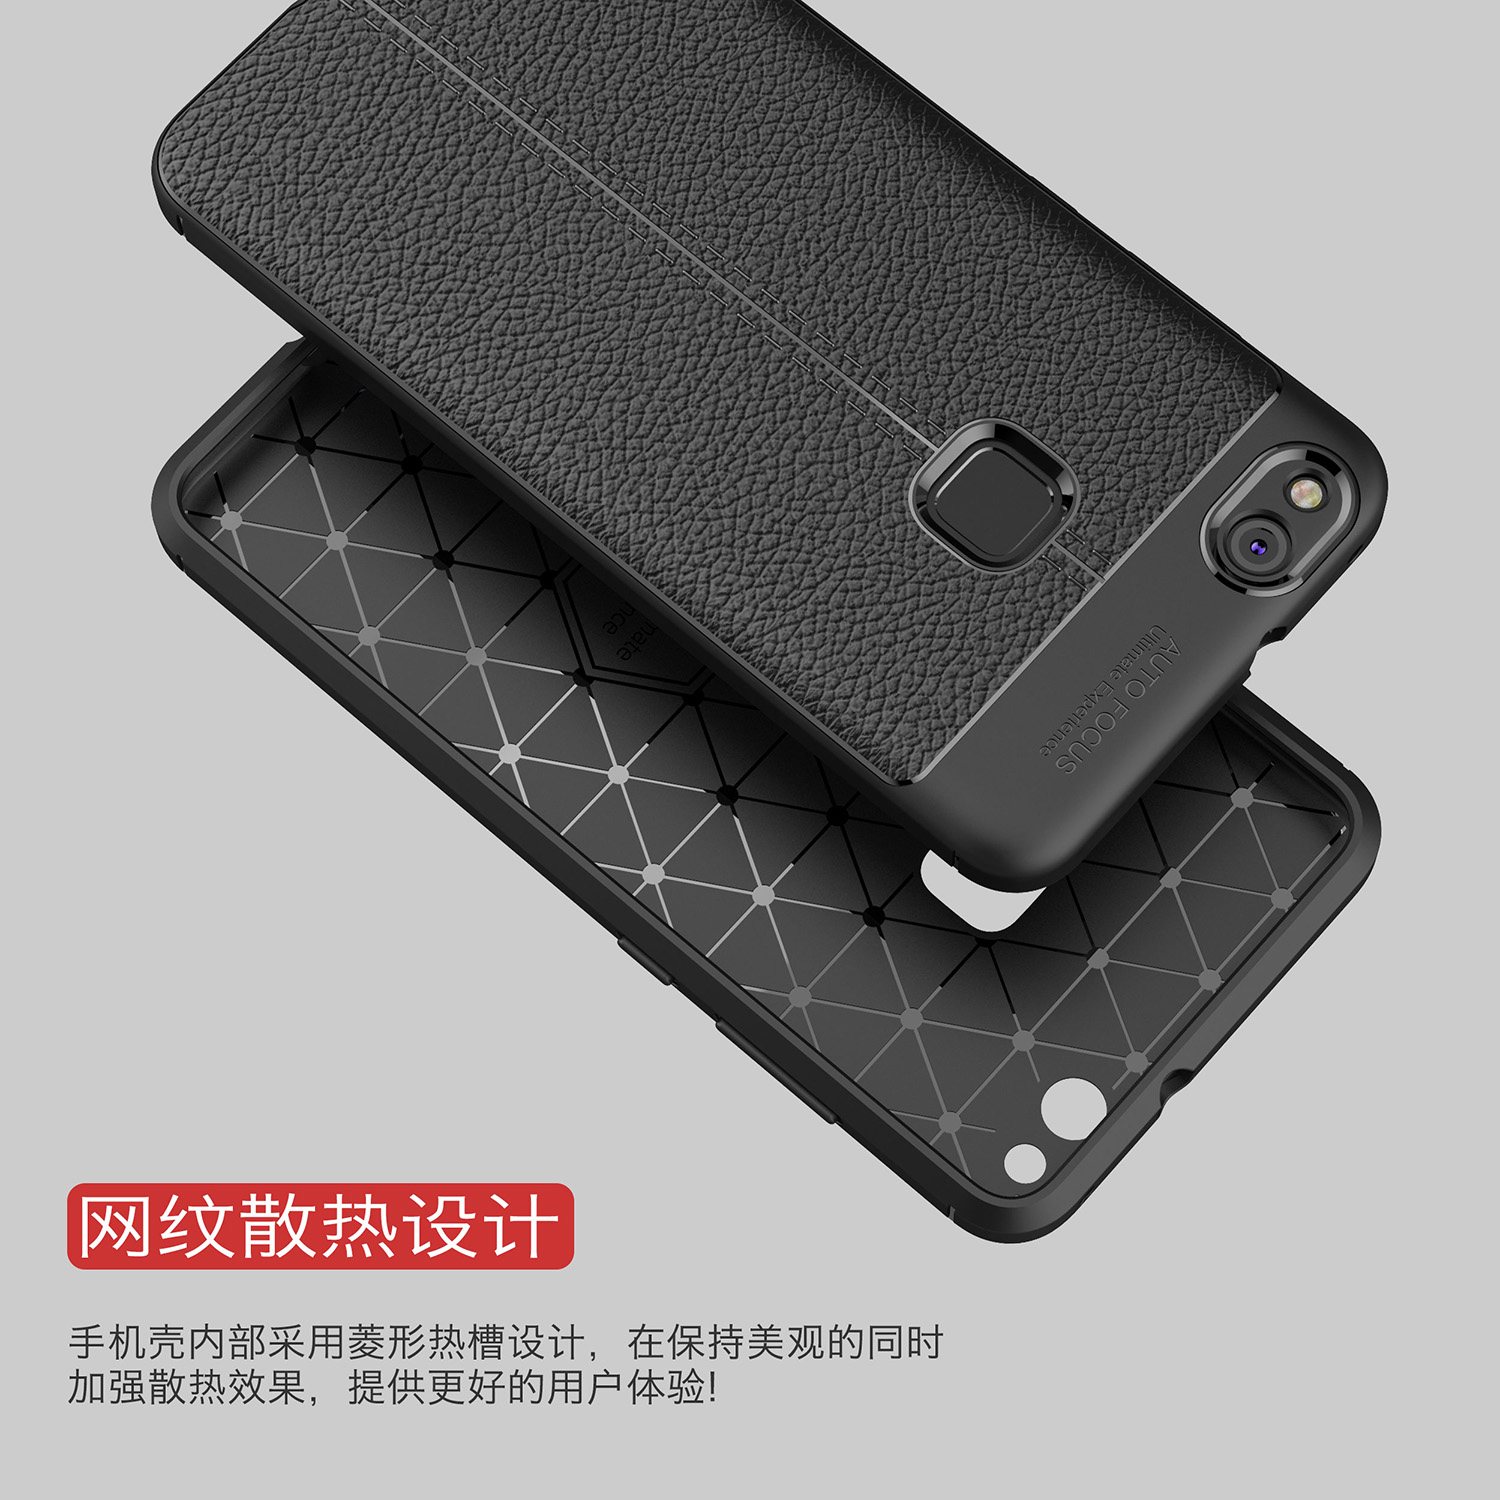 Huawei P10 Lite Case Huawei P10lite Cover Soft Silicone TPU Leather Shockproof Armor Phone Case For Huawei P10 Lite